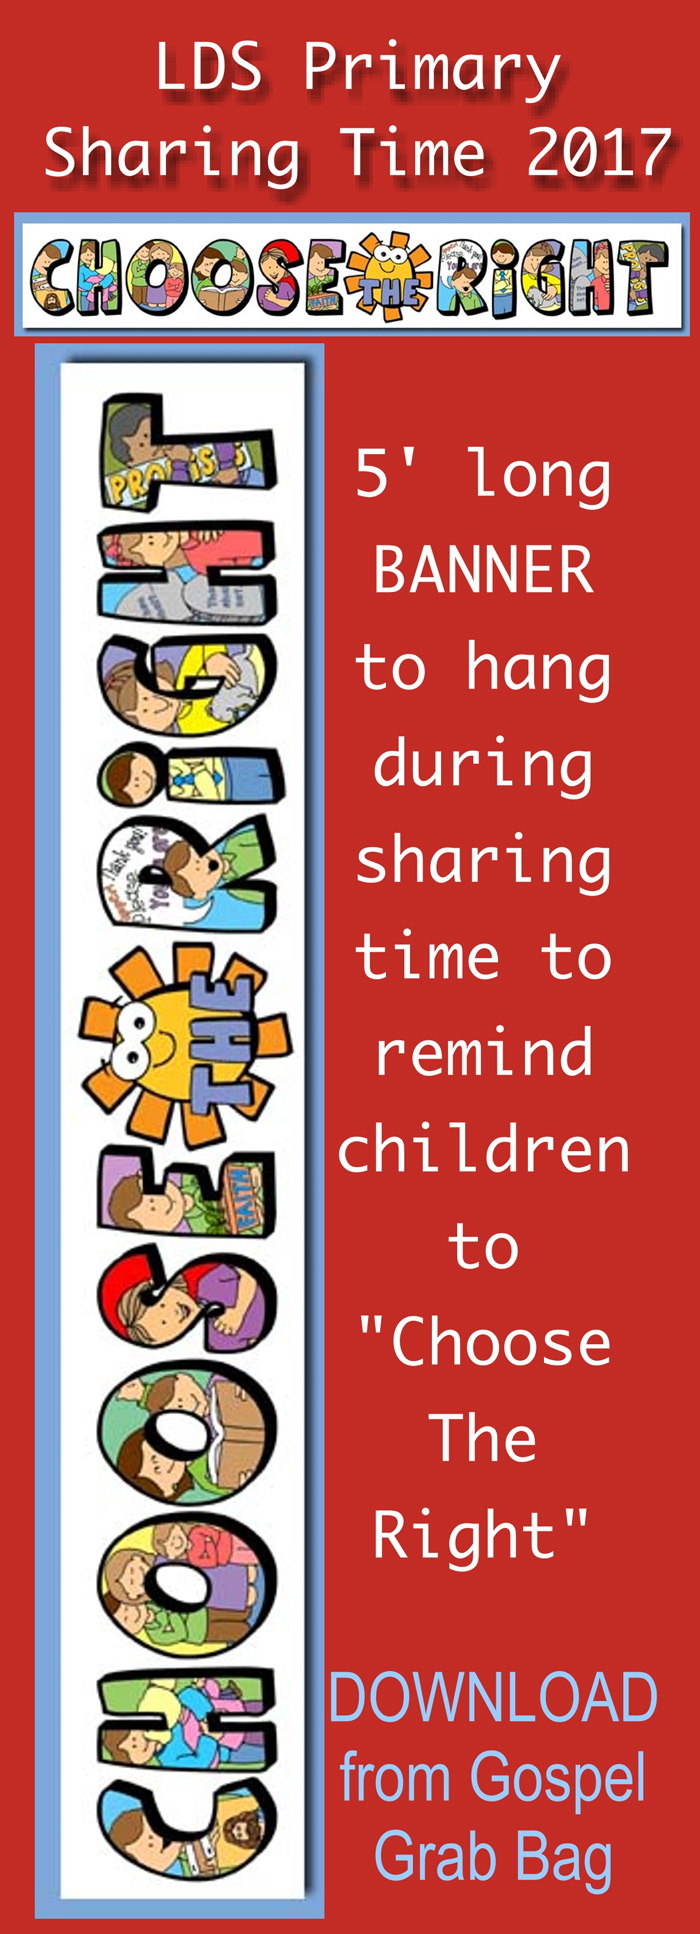 """DOWNLOAD Primary 2017 Sharing Time 5' long banner to display during sharing time to remind children to """"CHOOSE THE RIGHT"""", GospelGrabBag.com"""